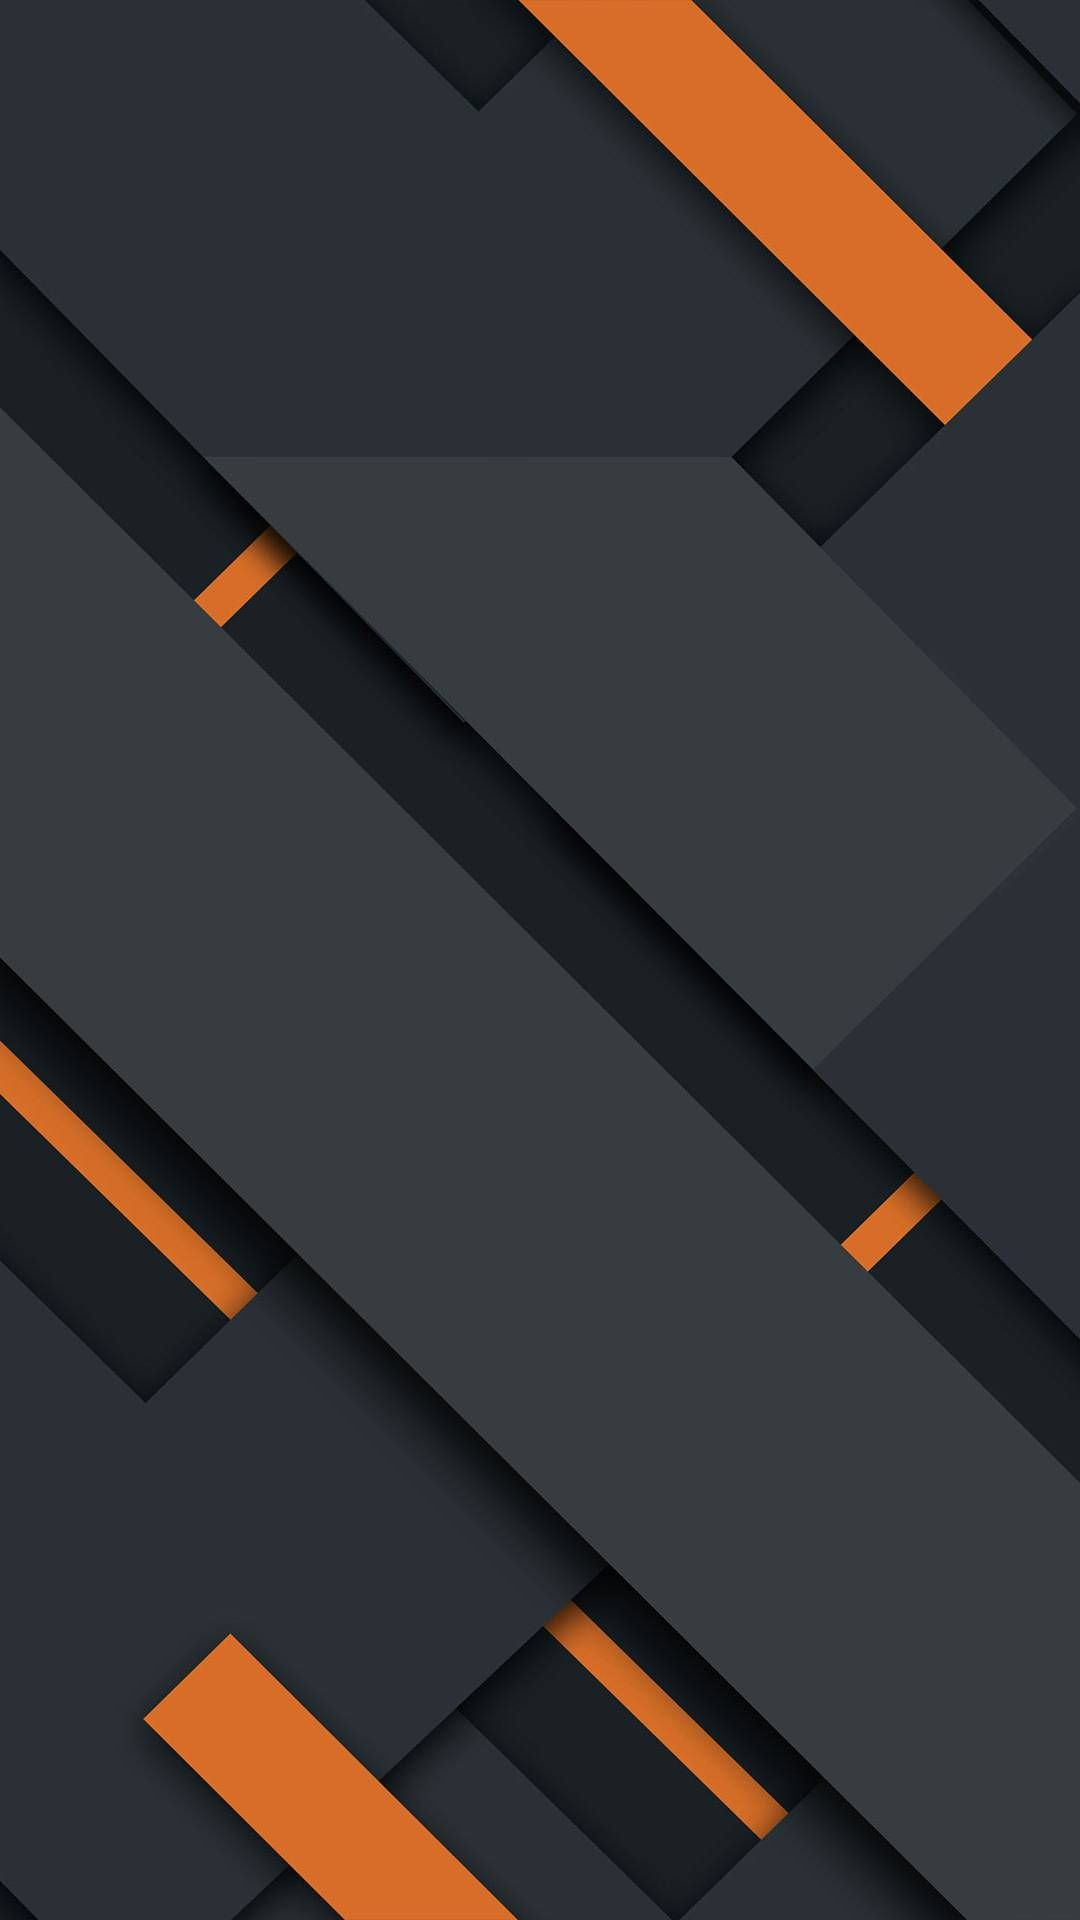 Muchatseble Android Wallpaper Mkbhd Wallpapers Orange Wallpaper